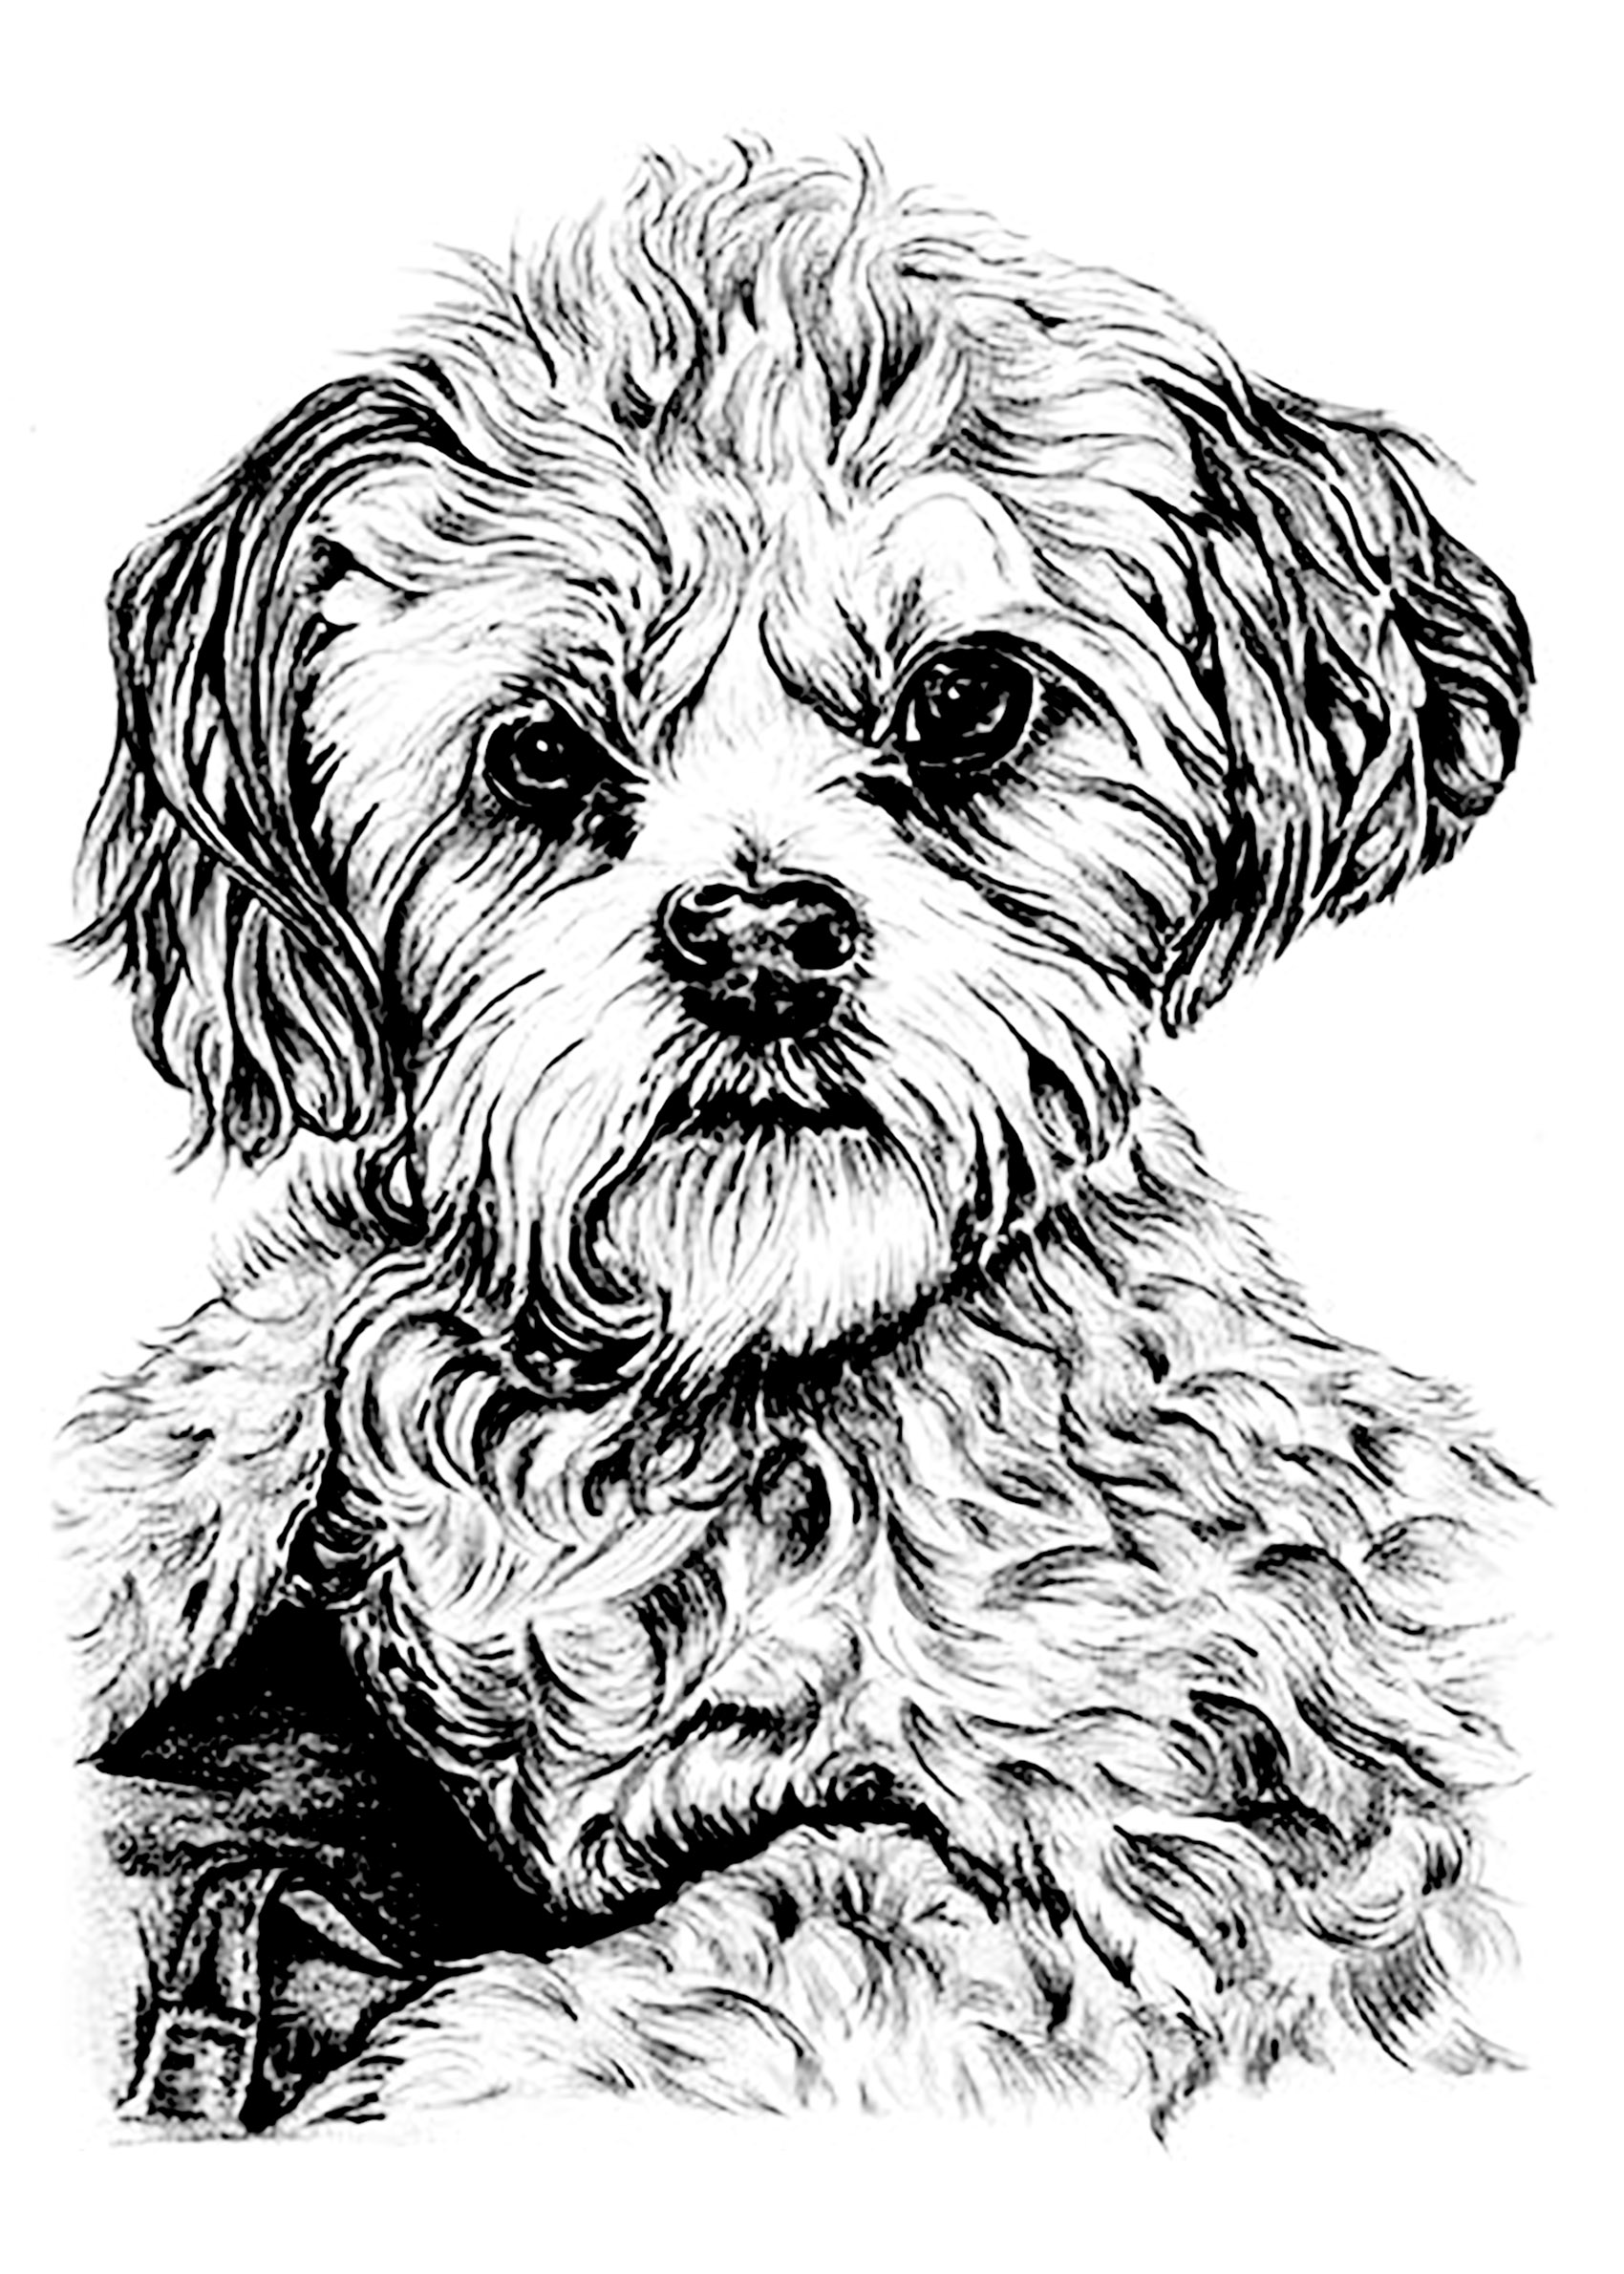 Printable picture of a dog